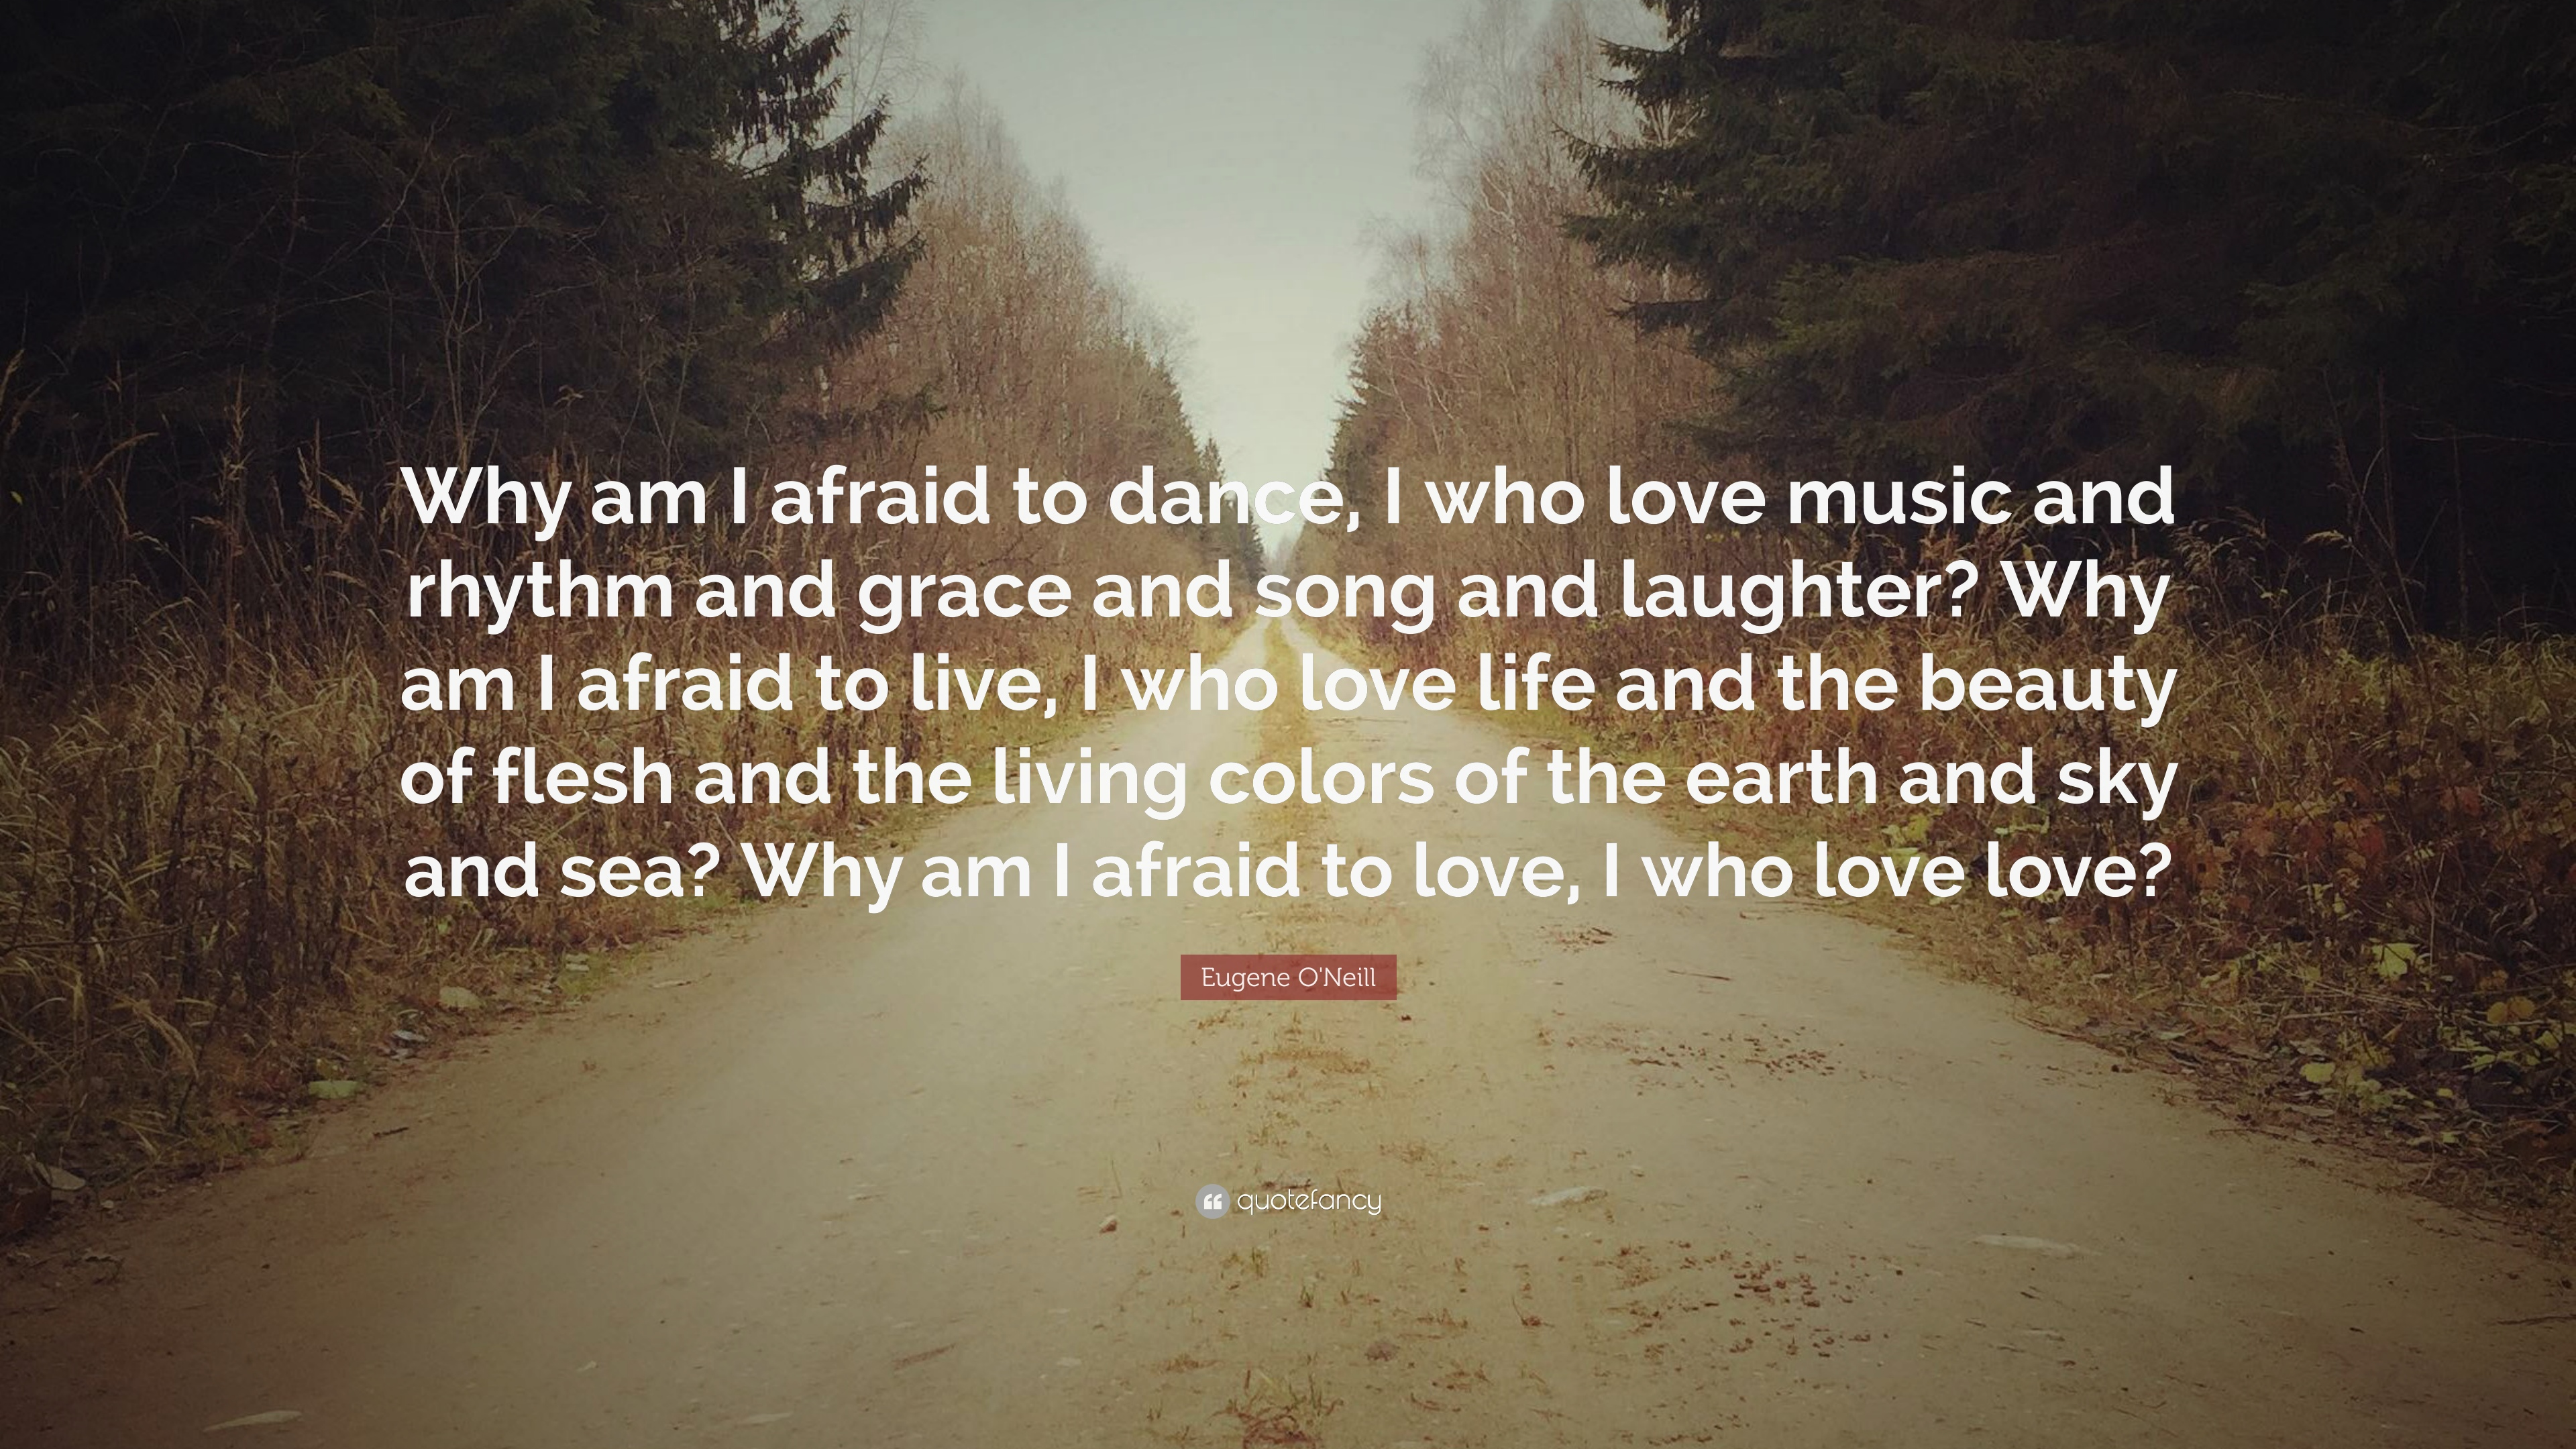 Eugene ONeill Quote: Why am I afraid to dance, I who